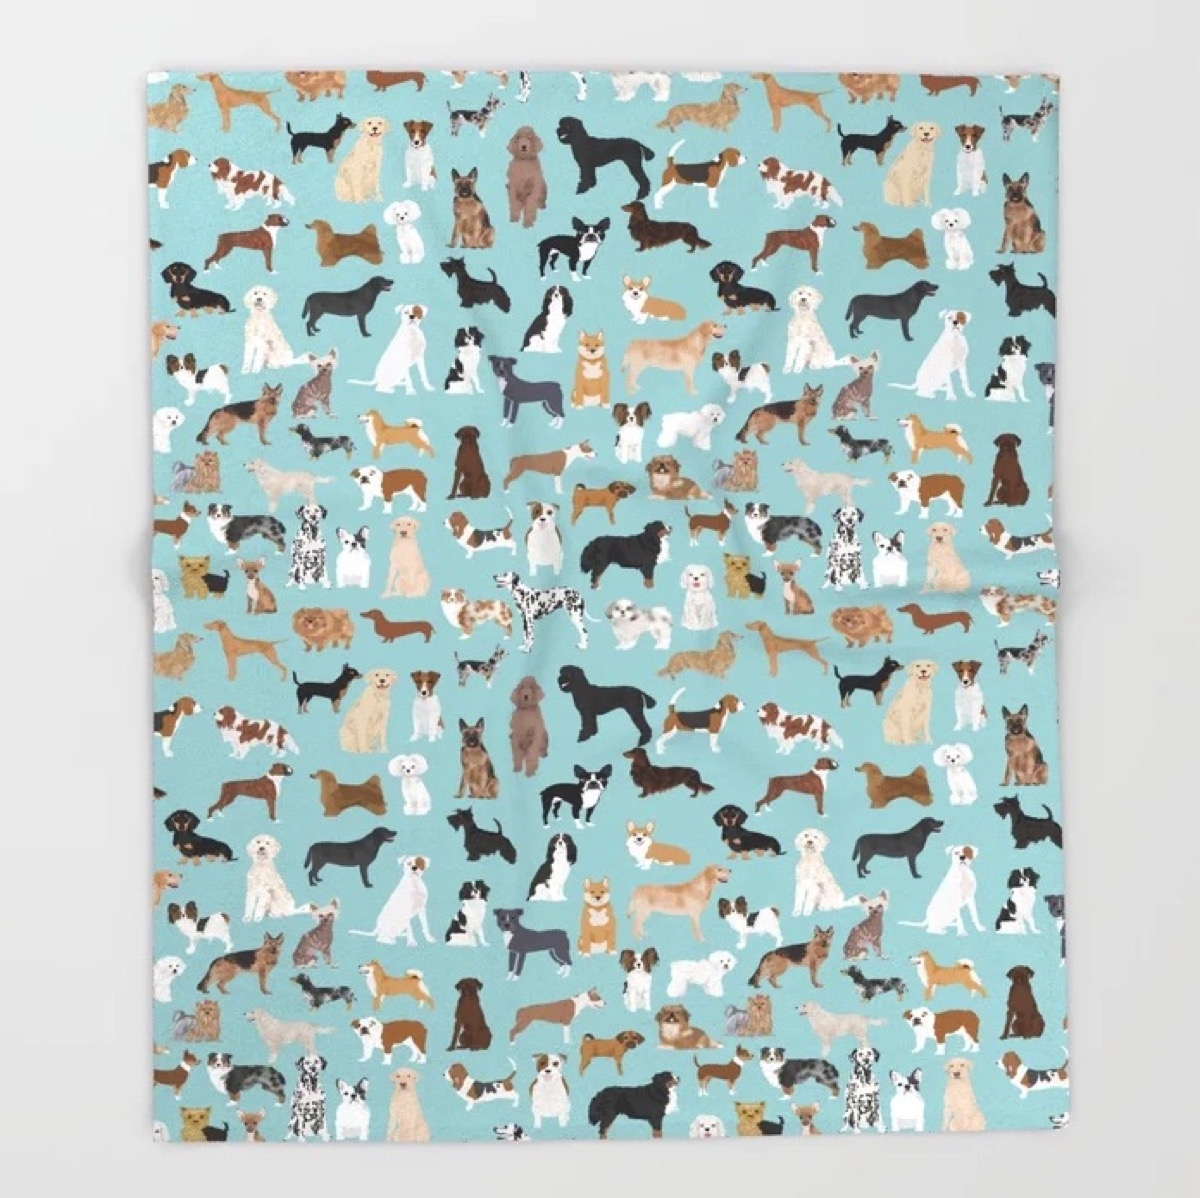 A blue throw blanket with dogs all over it